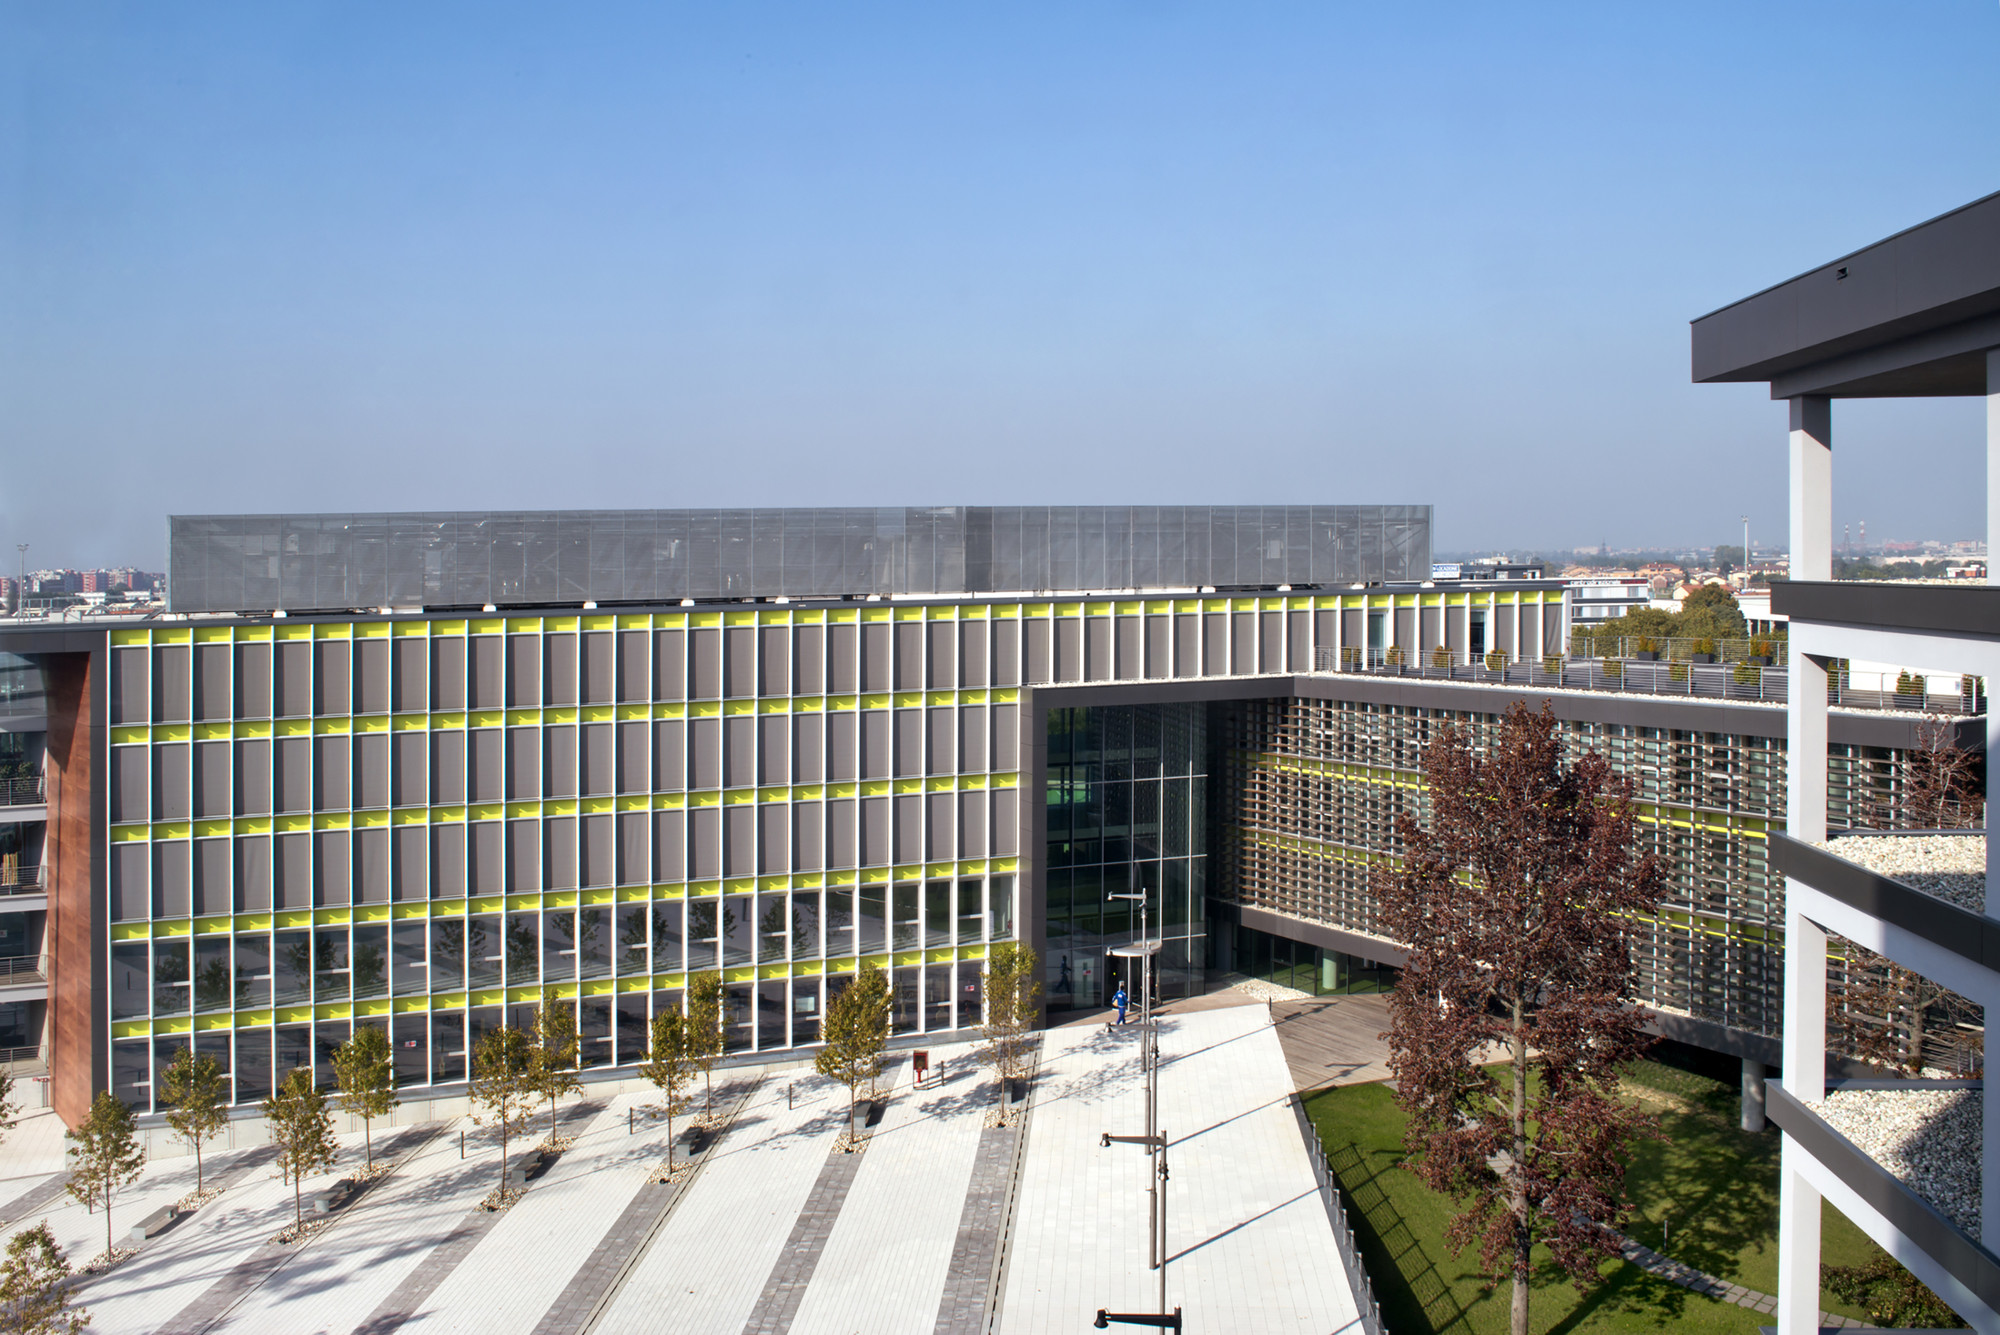 Segreen Business Park  / Lombardini22, Courtesy of Lombardini22